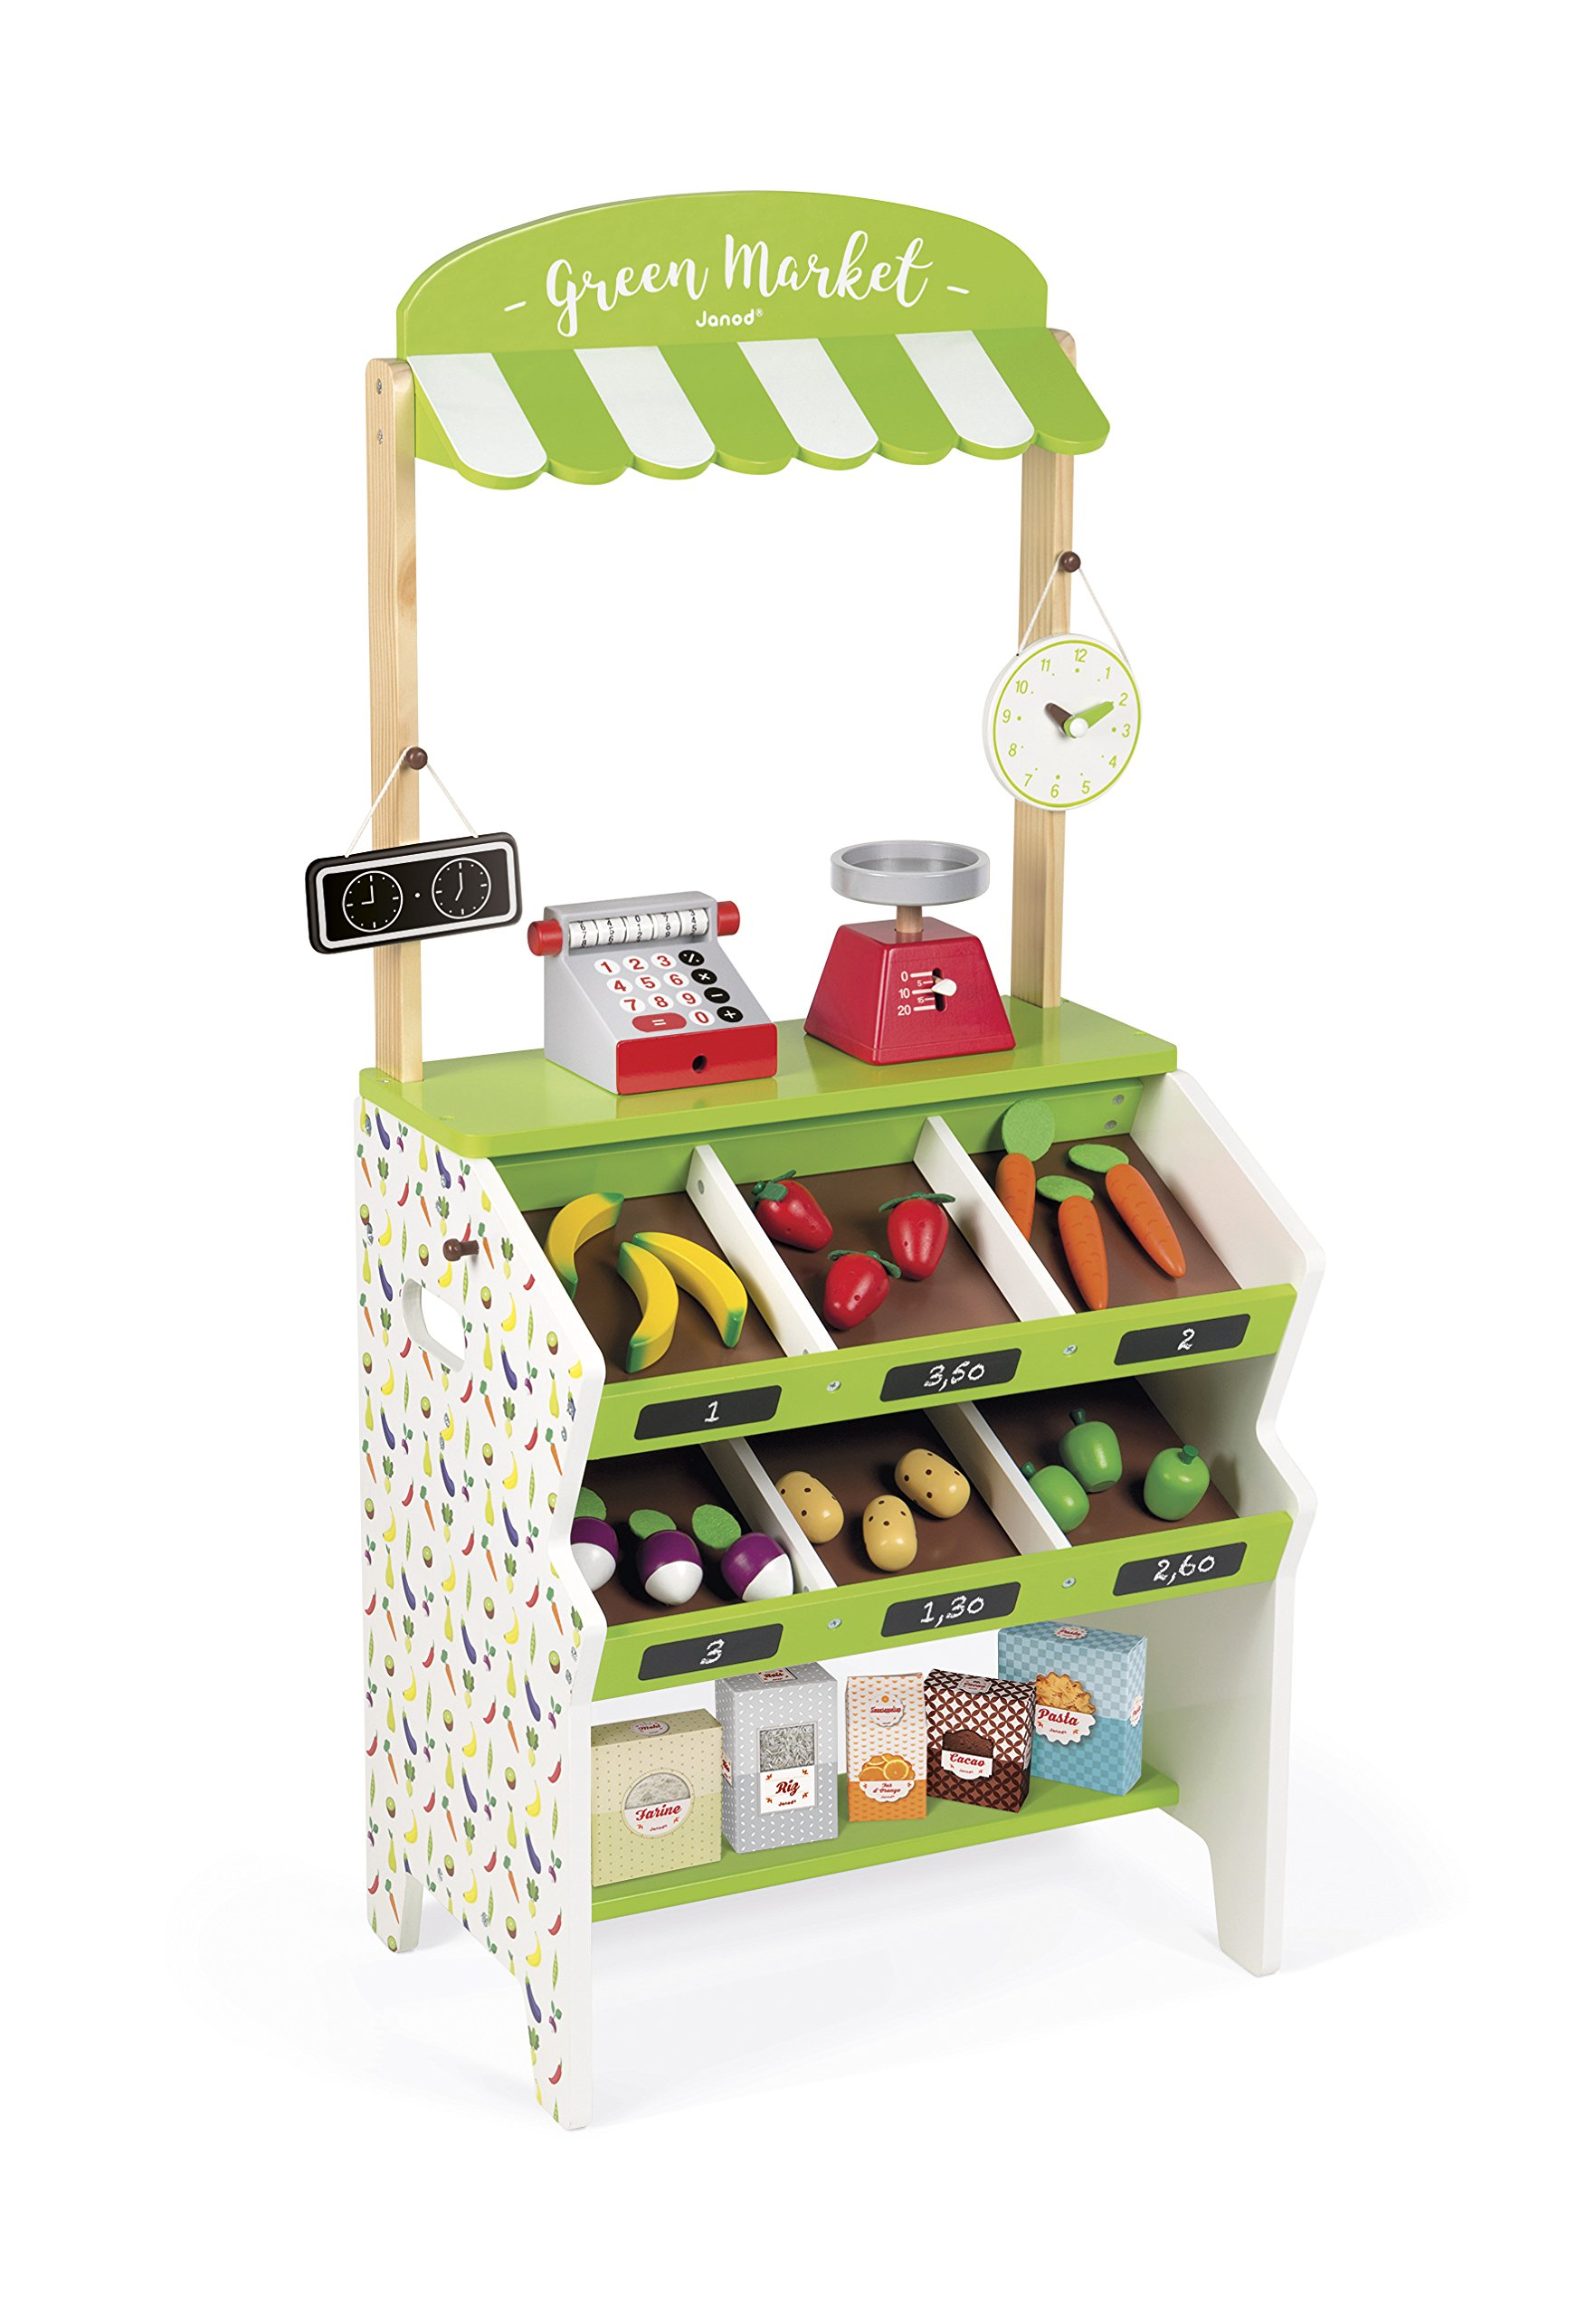 Janod Green Wooden Market Grocery Play Stand with 32 Accessories Ages 3 - 8 by Janod